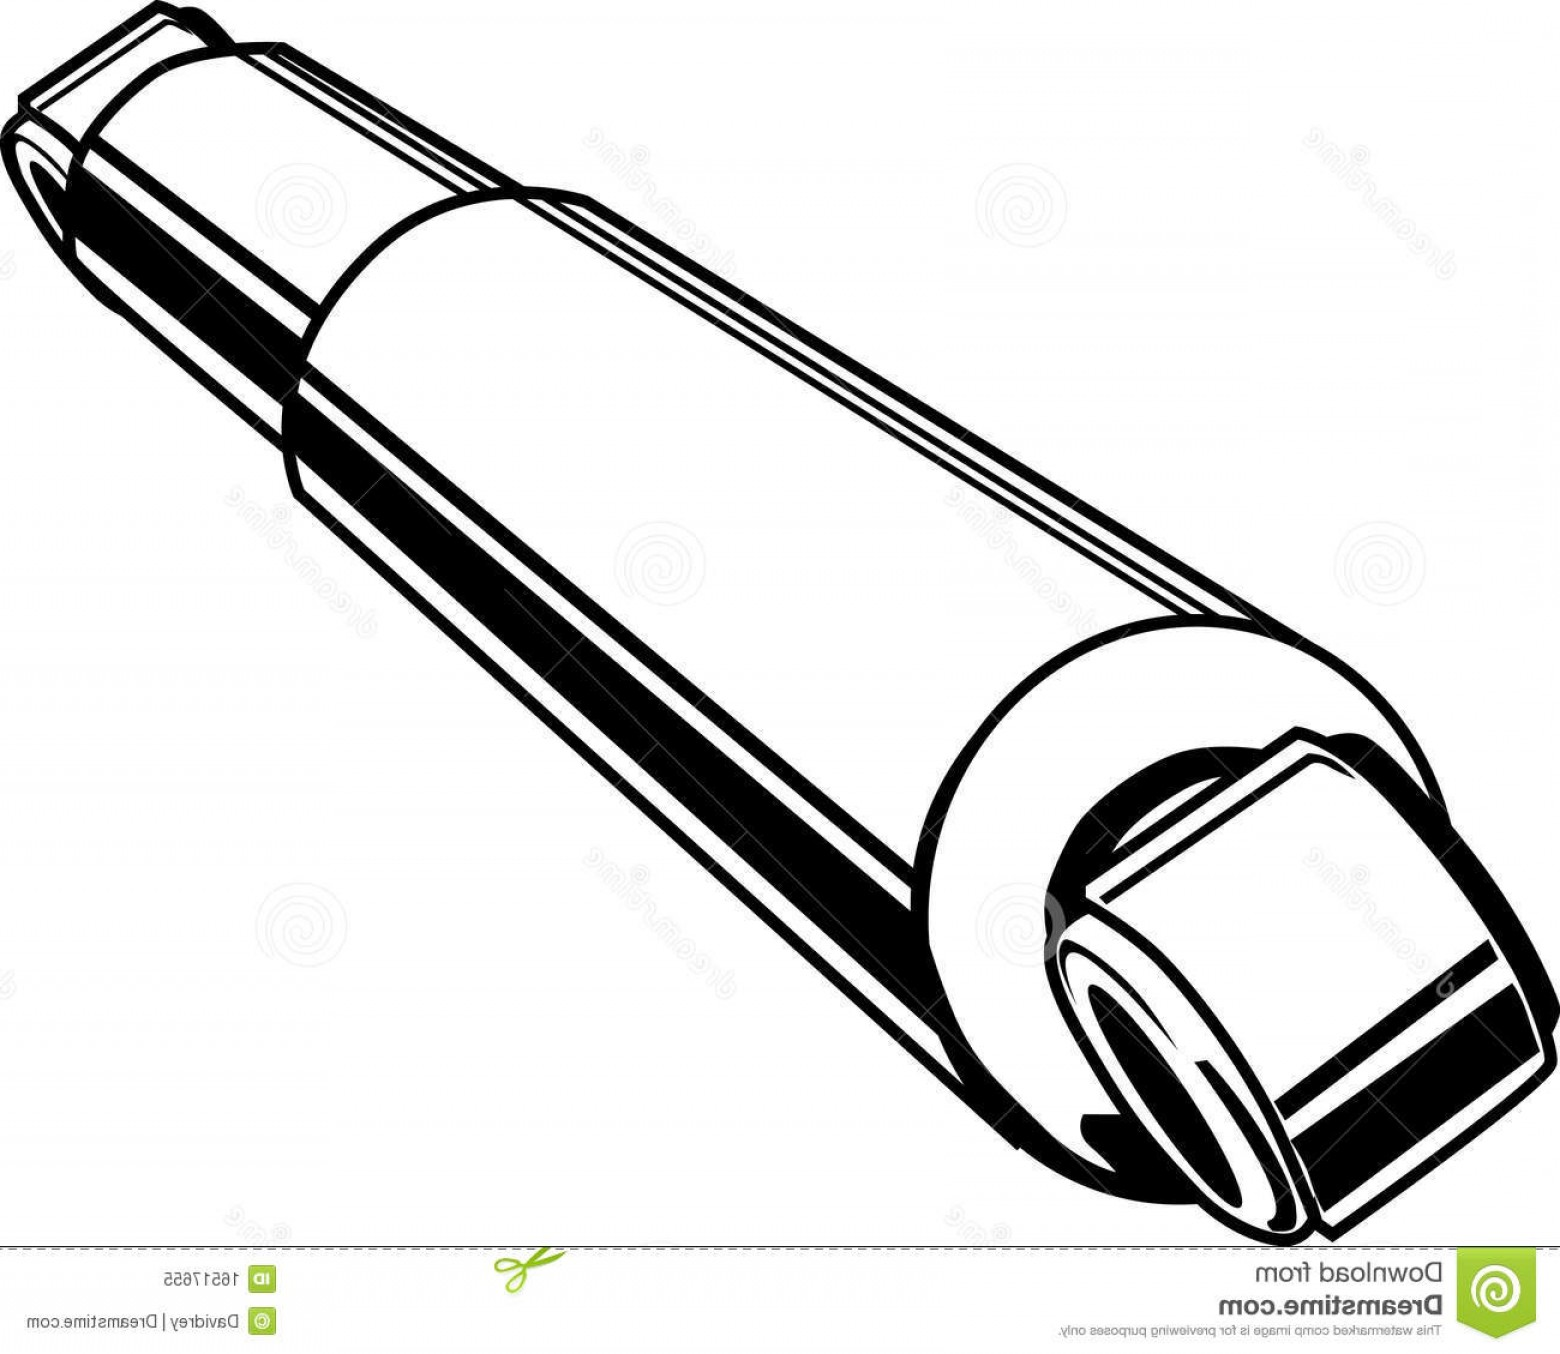 Struts For Cars Vector: Royalty Free Stock Photo Shock Car Part Image